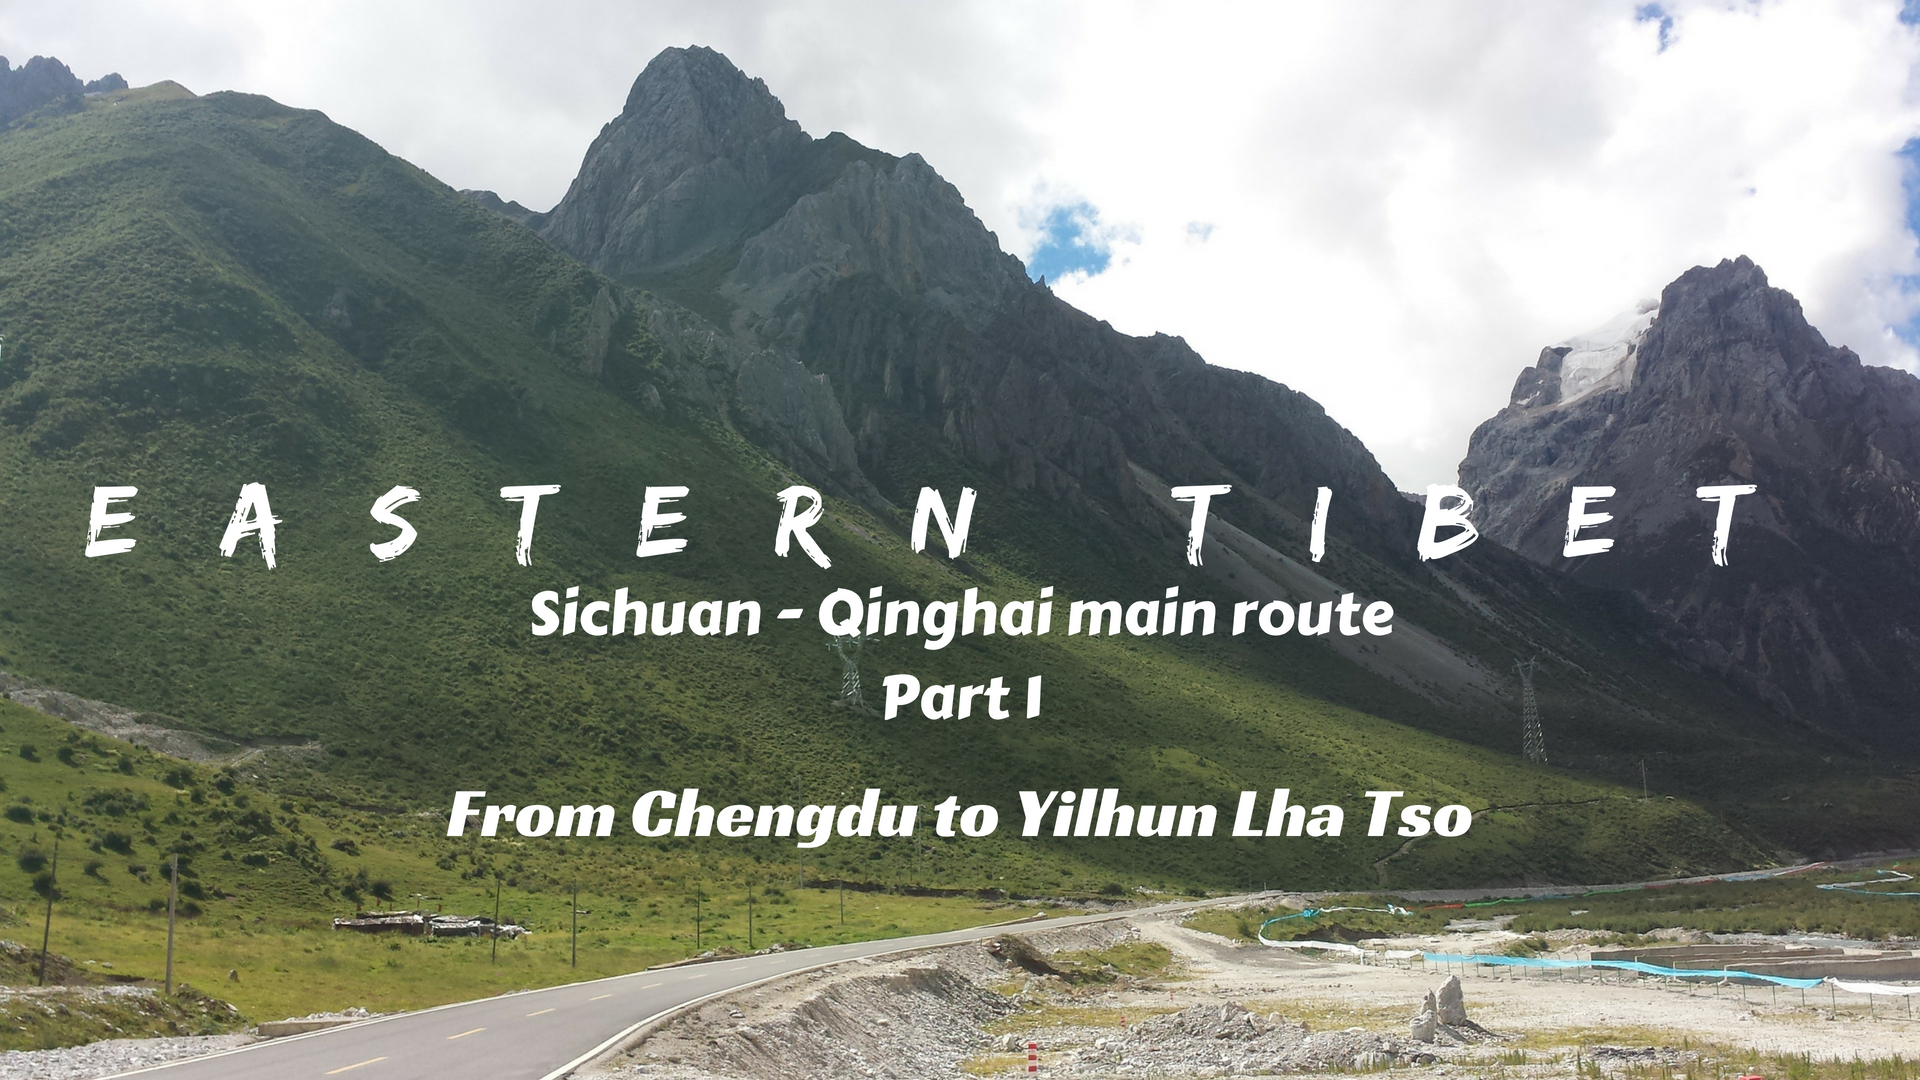 EASTERN TIBET ROUTE ULTIMATE GUIDE- Part 1